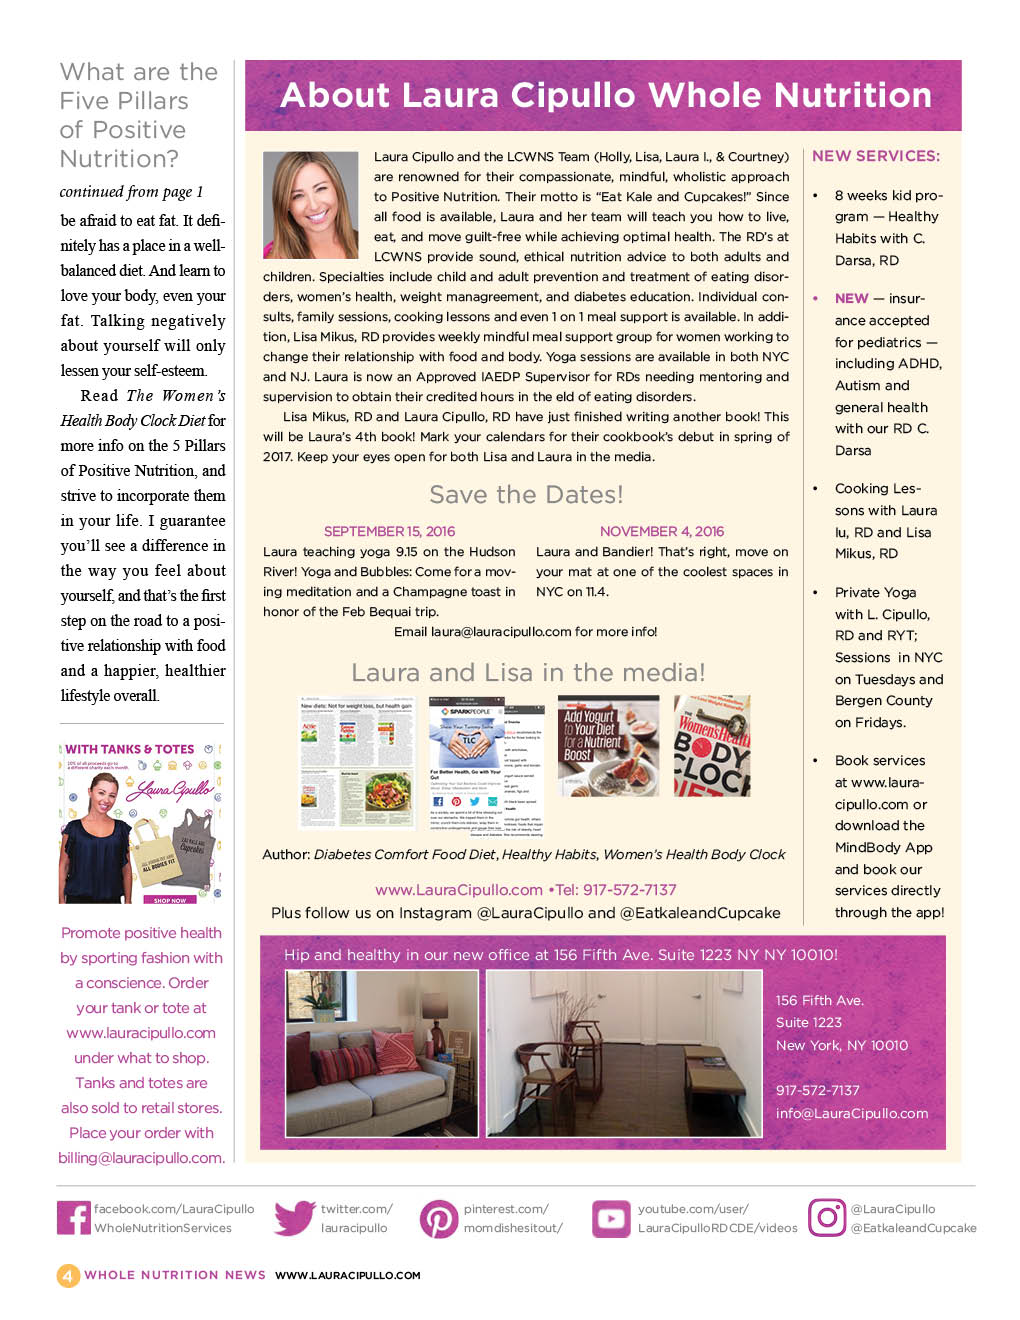 LauraNewsletter0816Email_p4